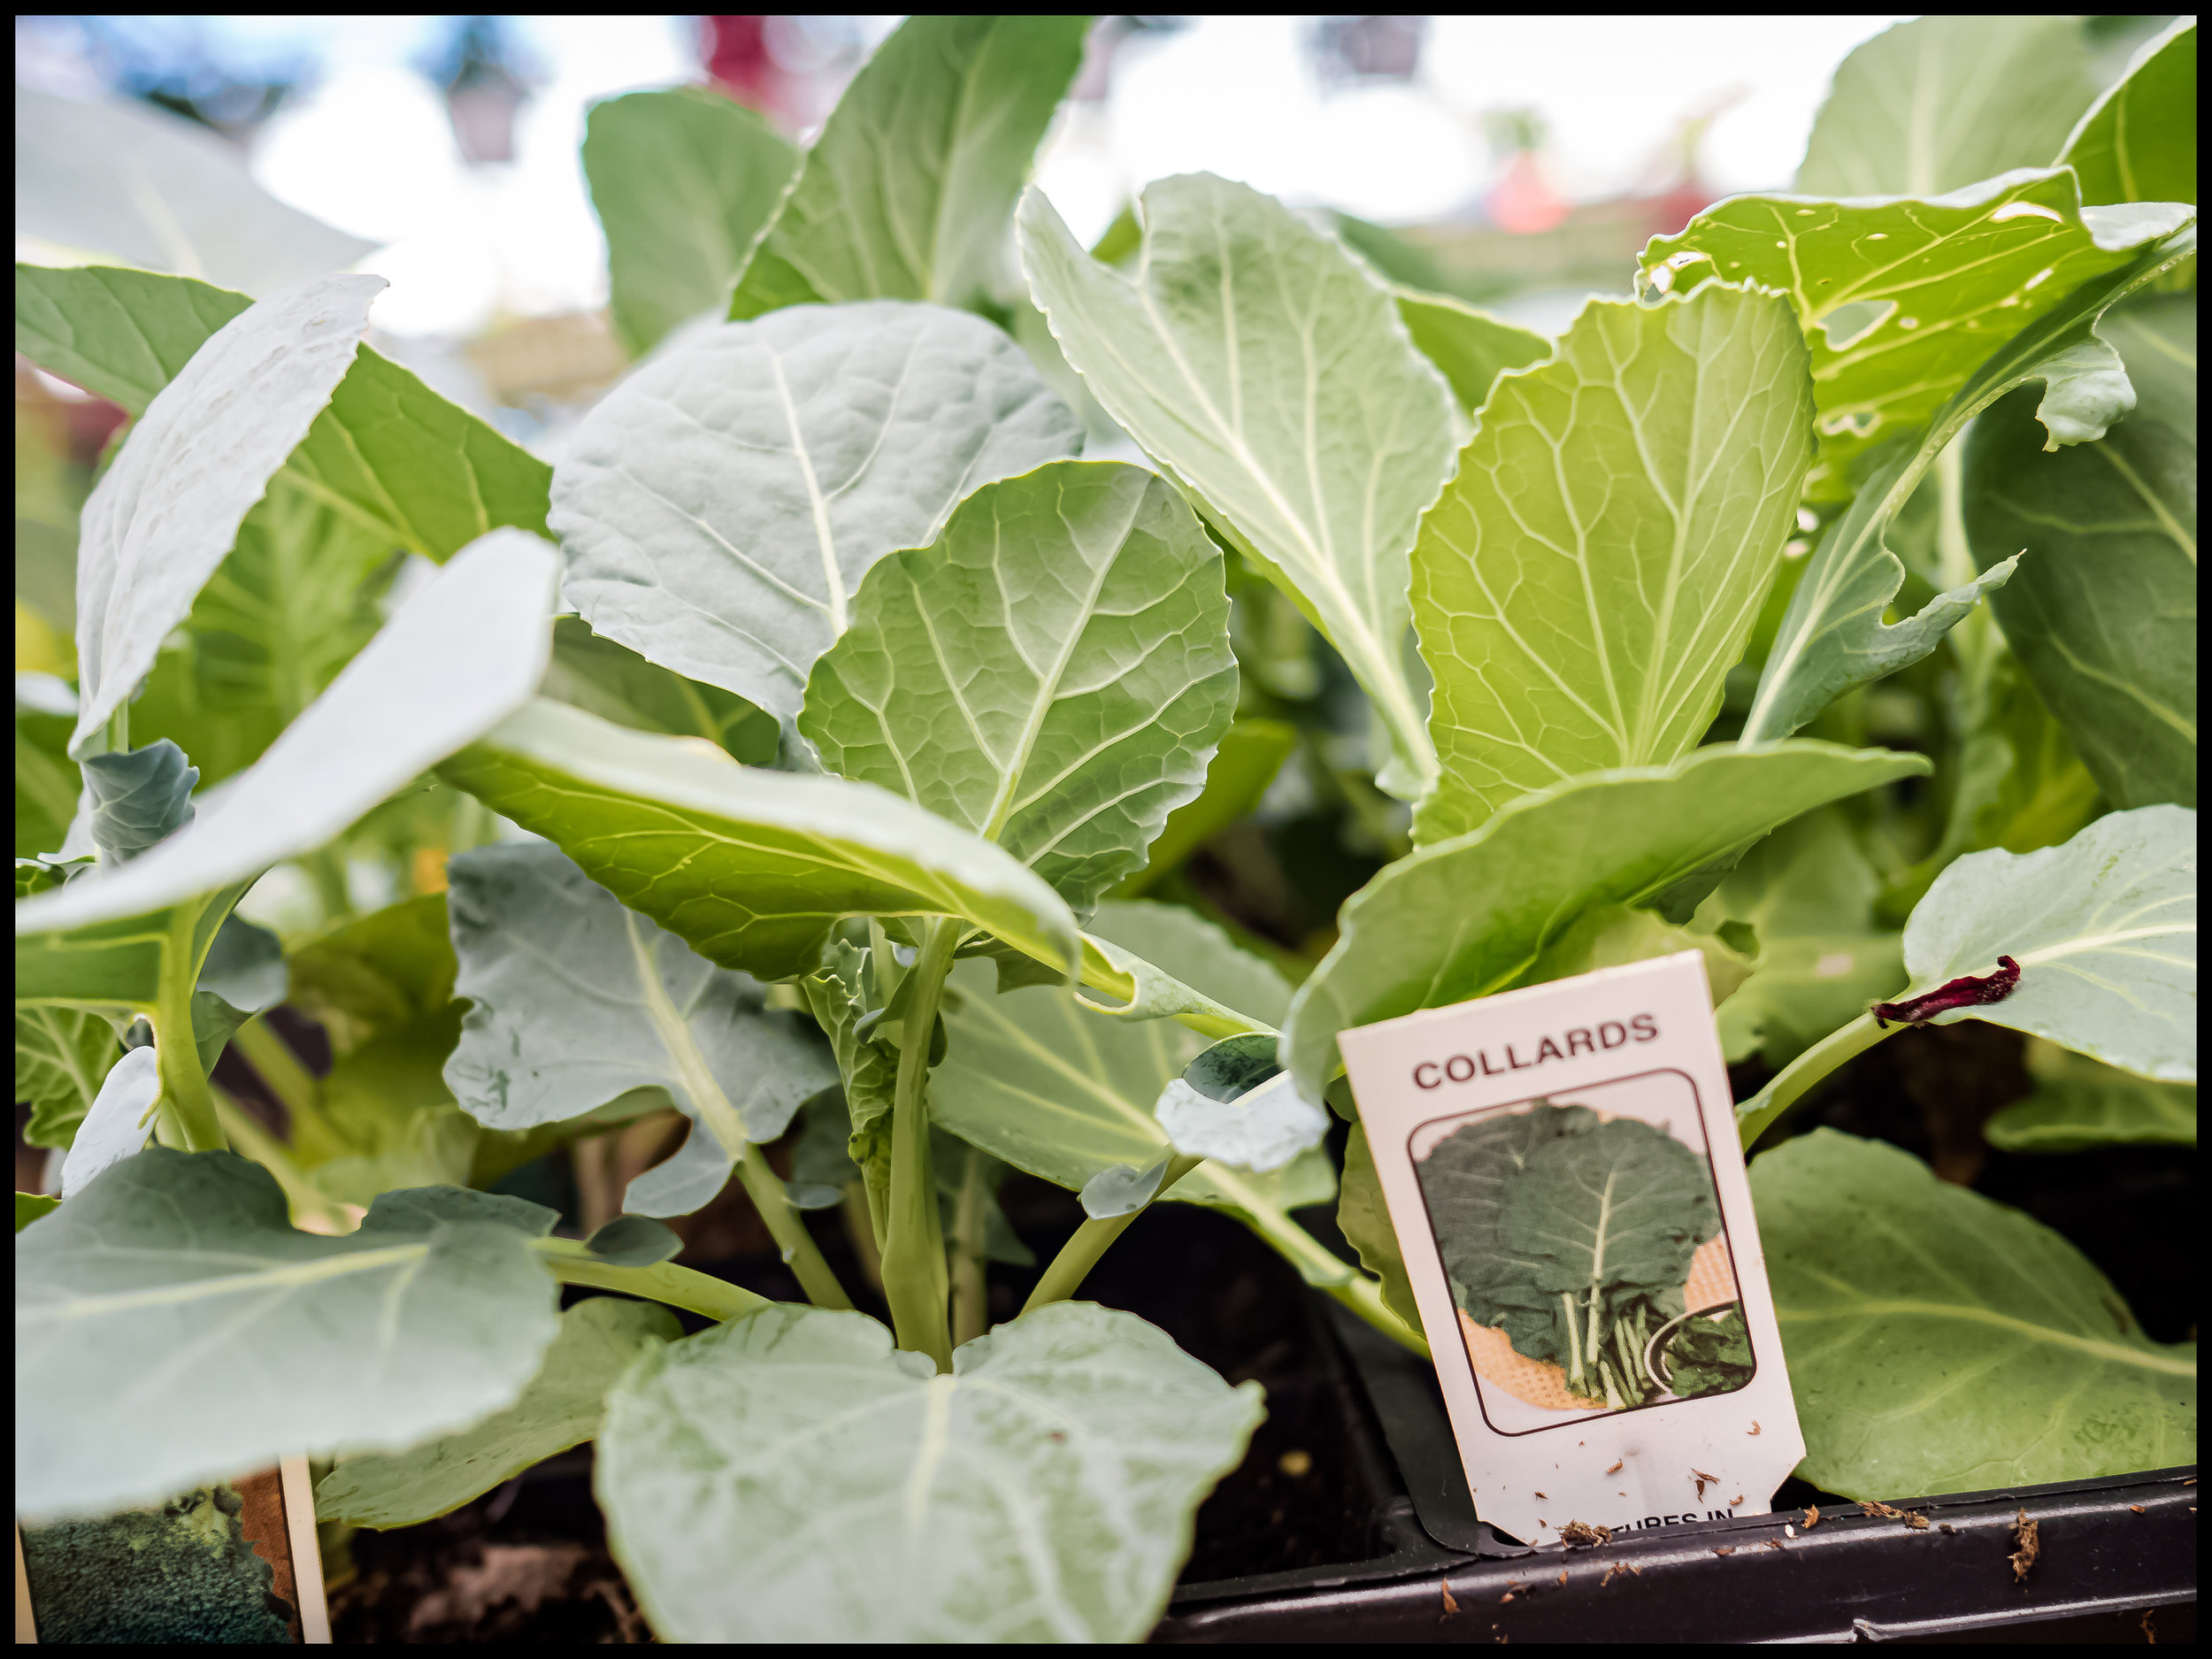 Collard Greens are a southern staple recipe, easy to make, healthy and tasty